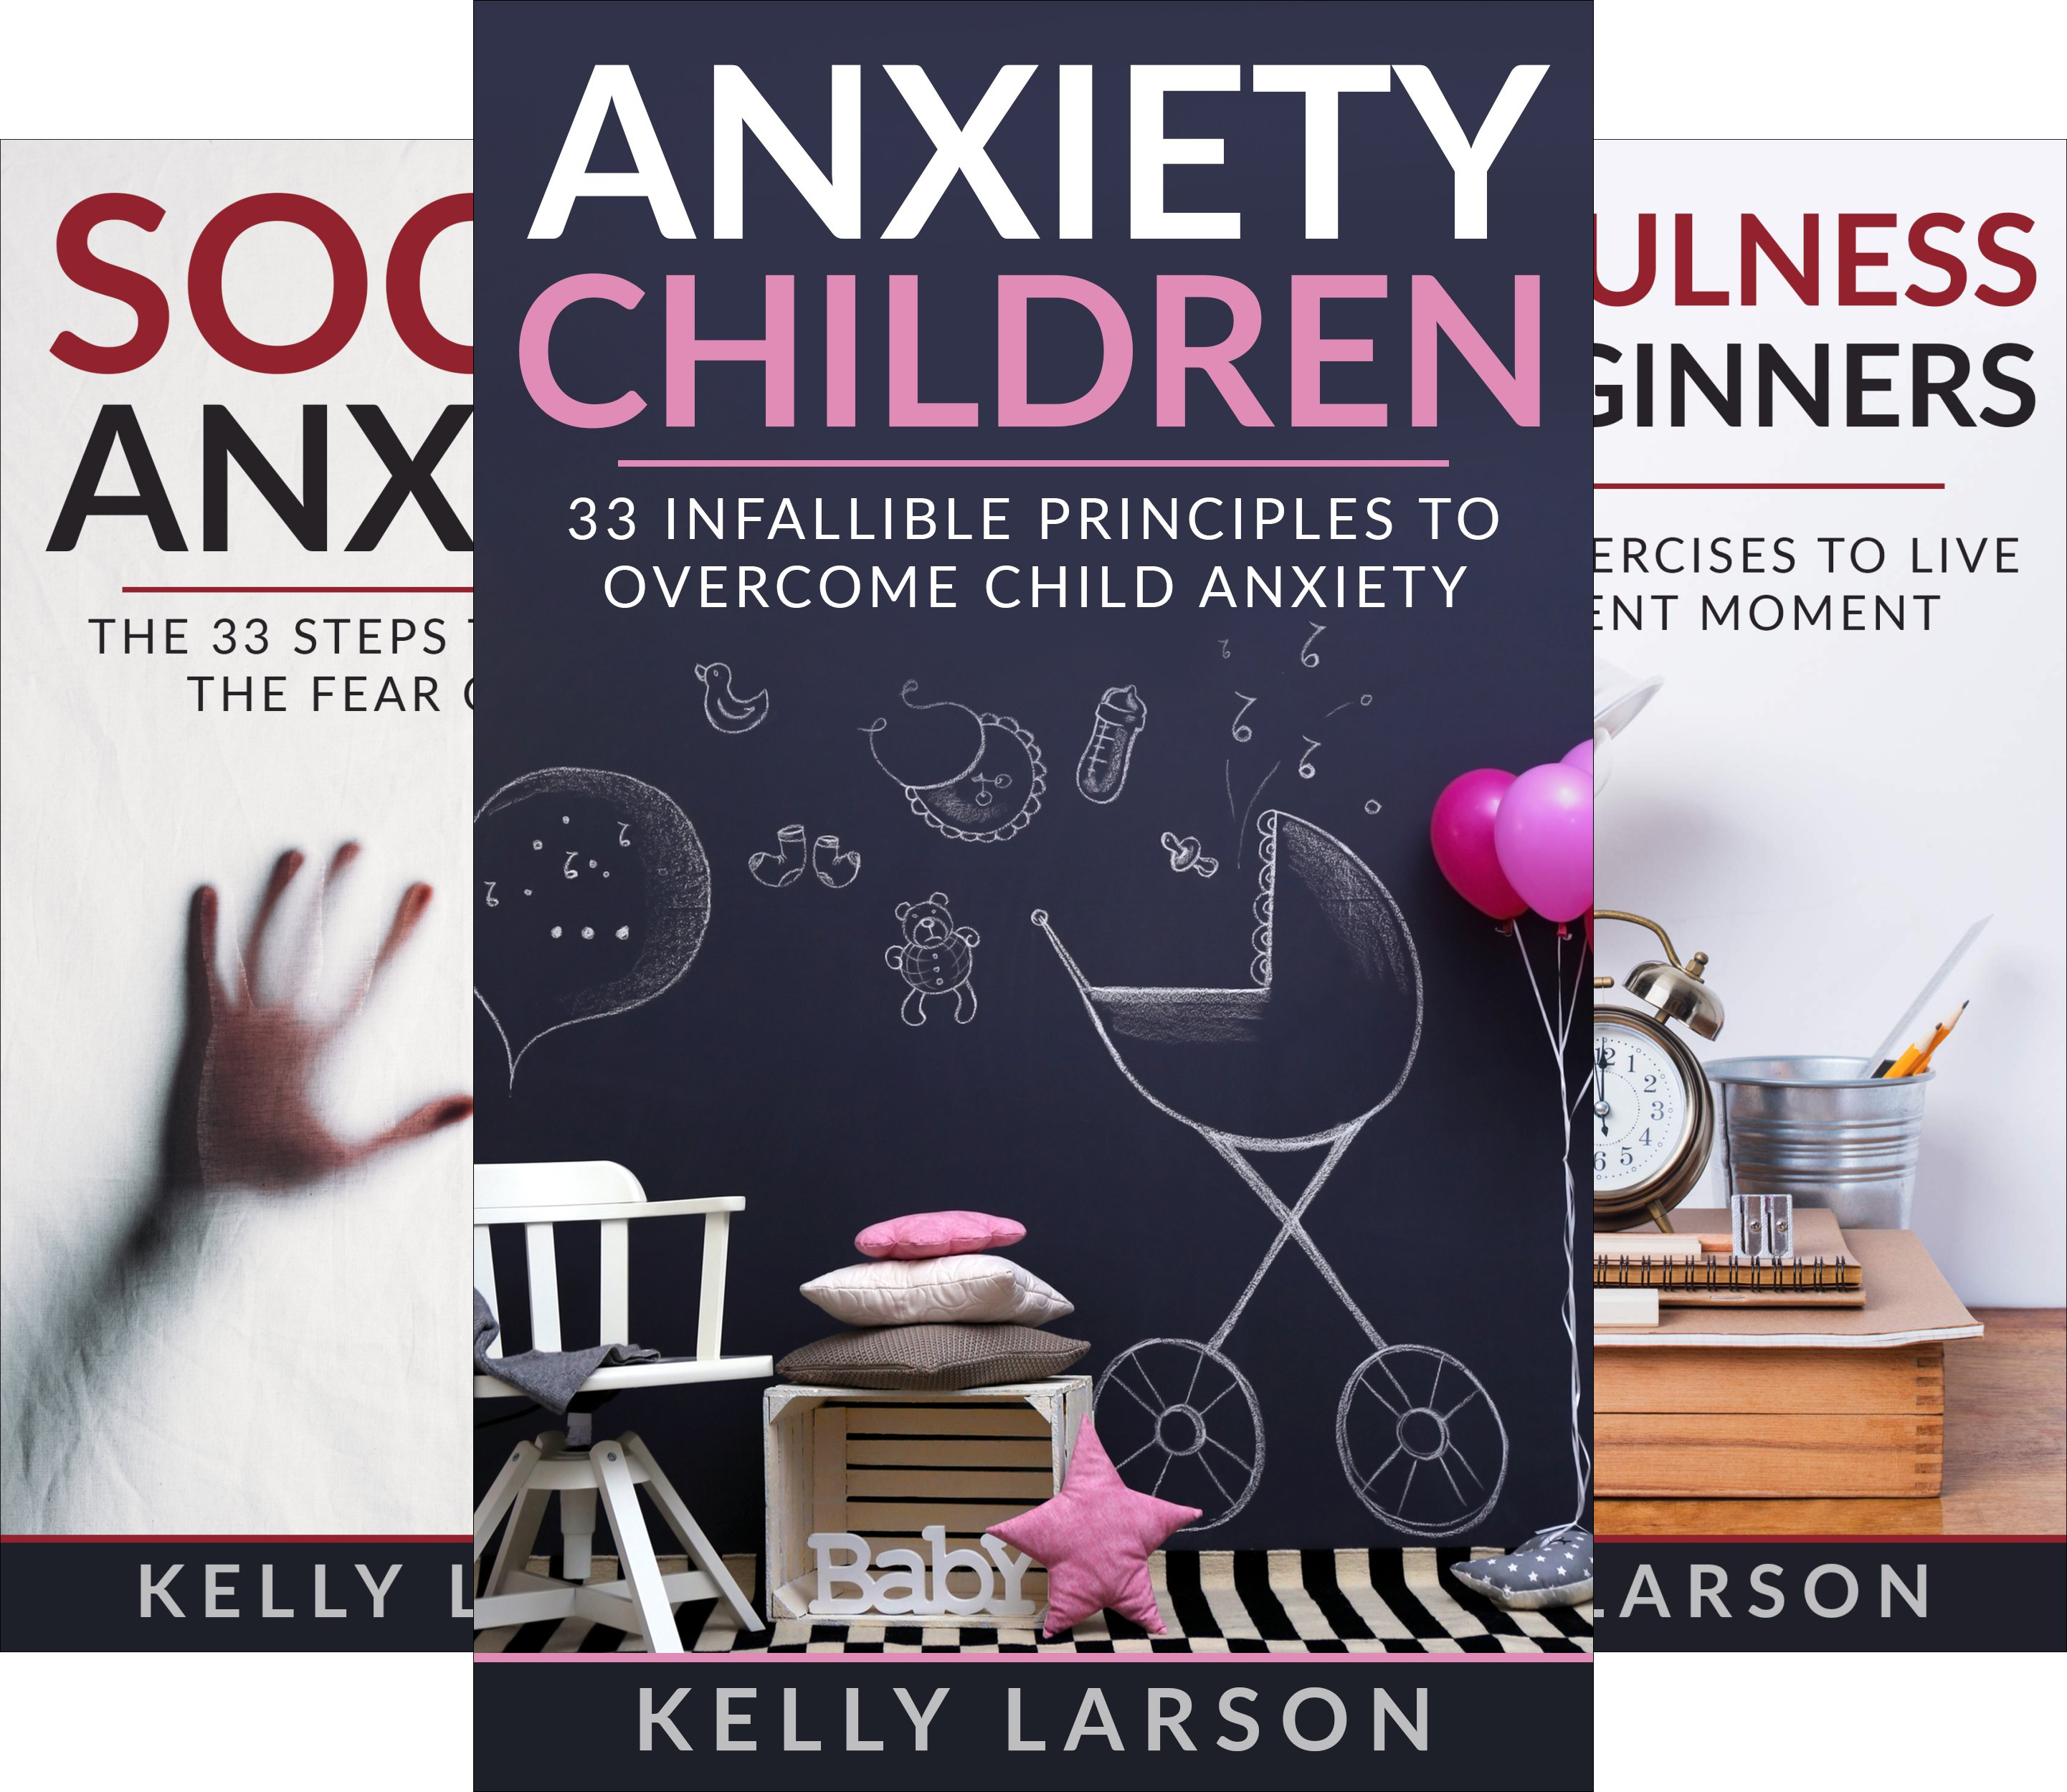 Life update with Kelly Larson (3 Book Series)